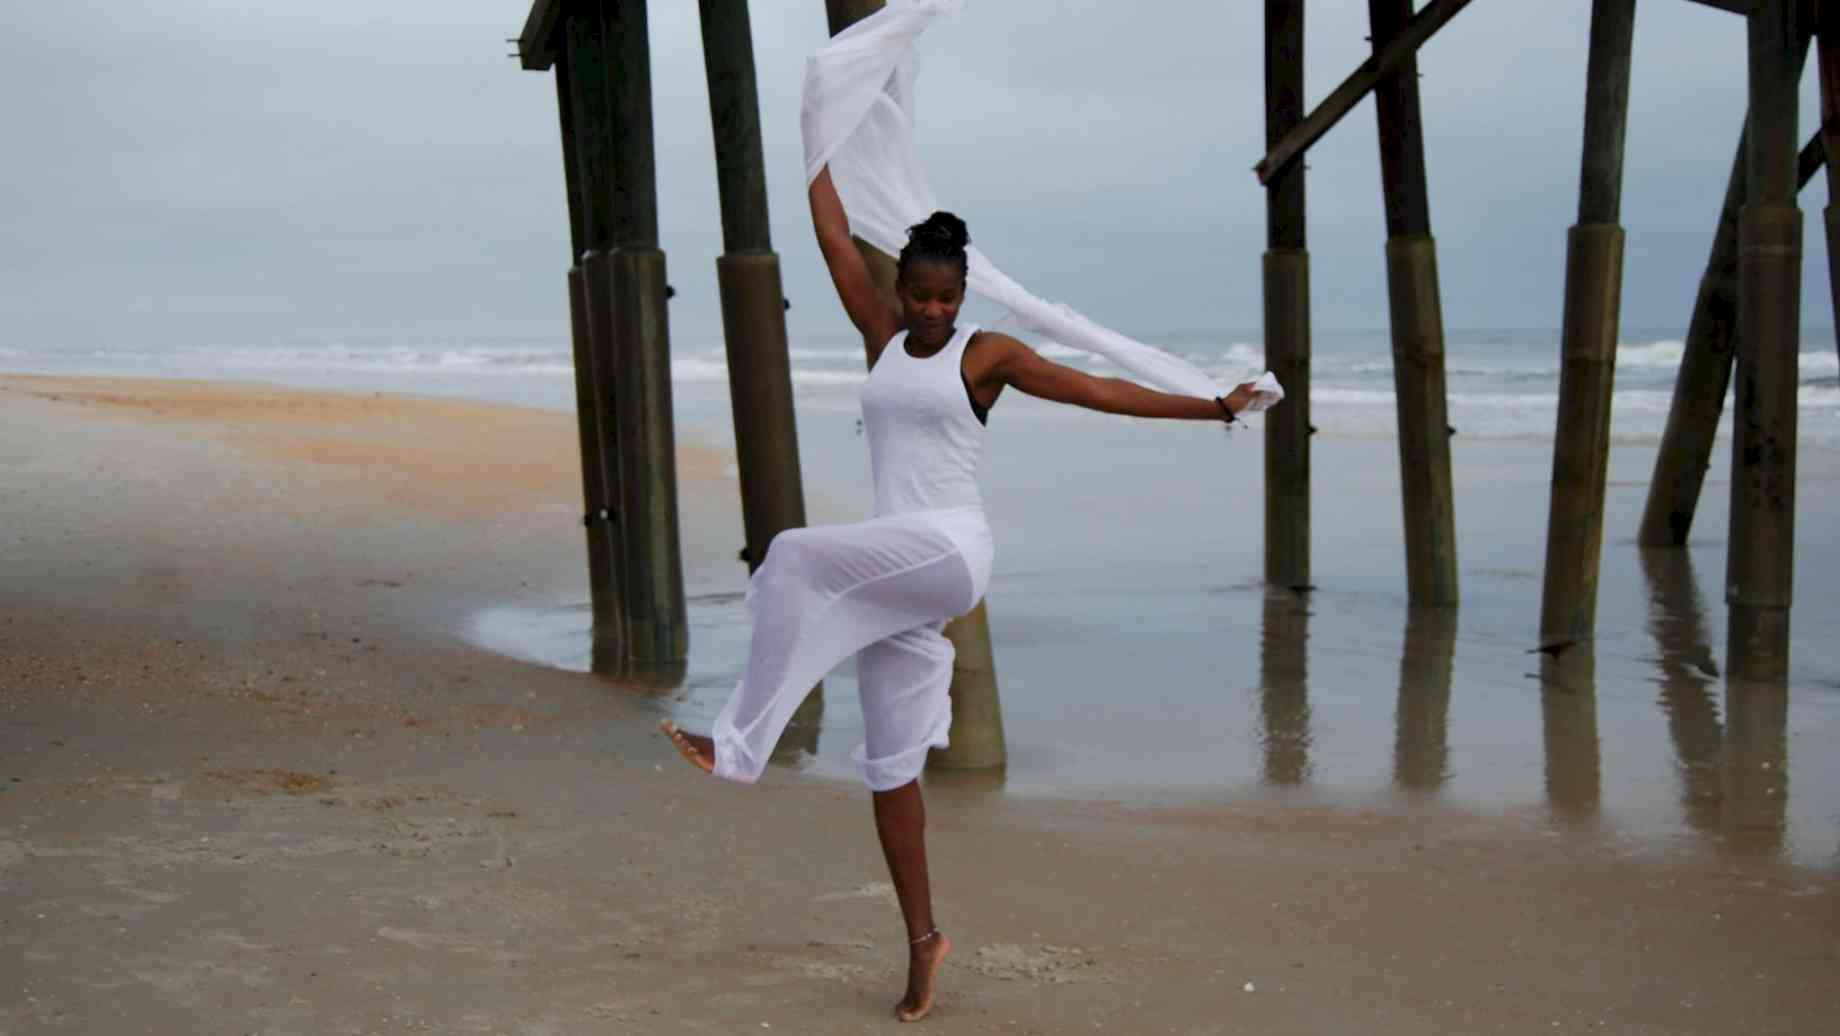 At the edge of the sea, Barakissa Coulibaly evokes the beauty of dance.